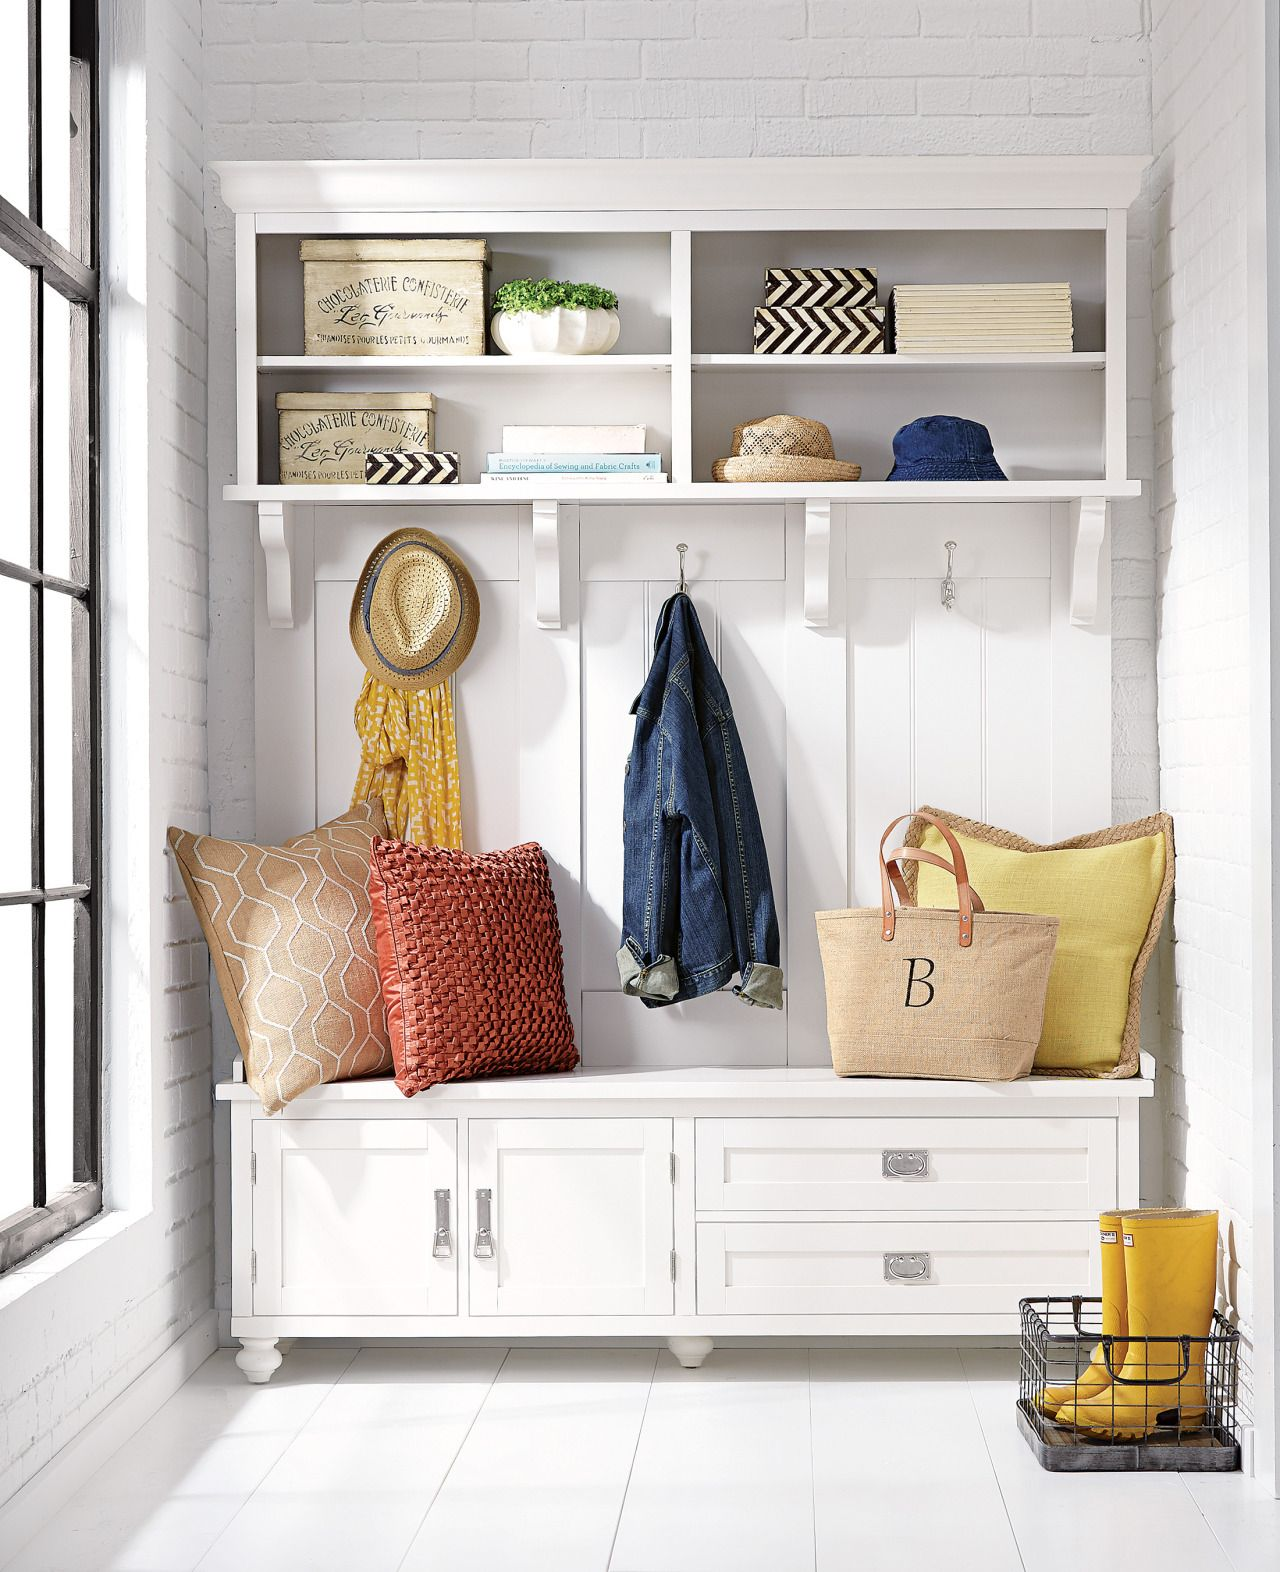 No Coat Closet? Lucky You! Use This Hall Tree For An Entryway Thatu0027s  Organized